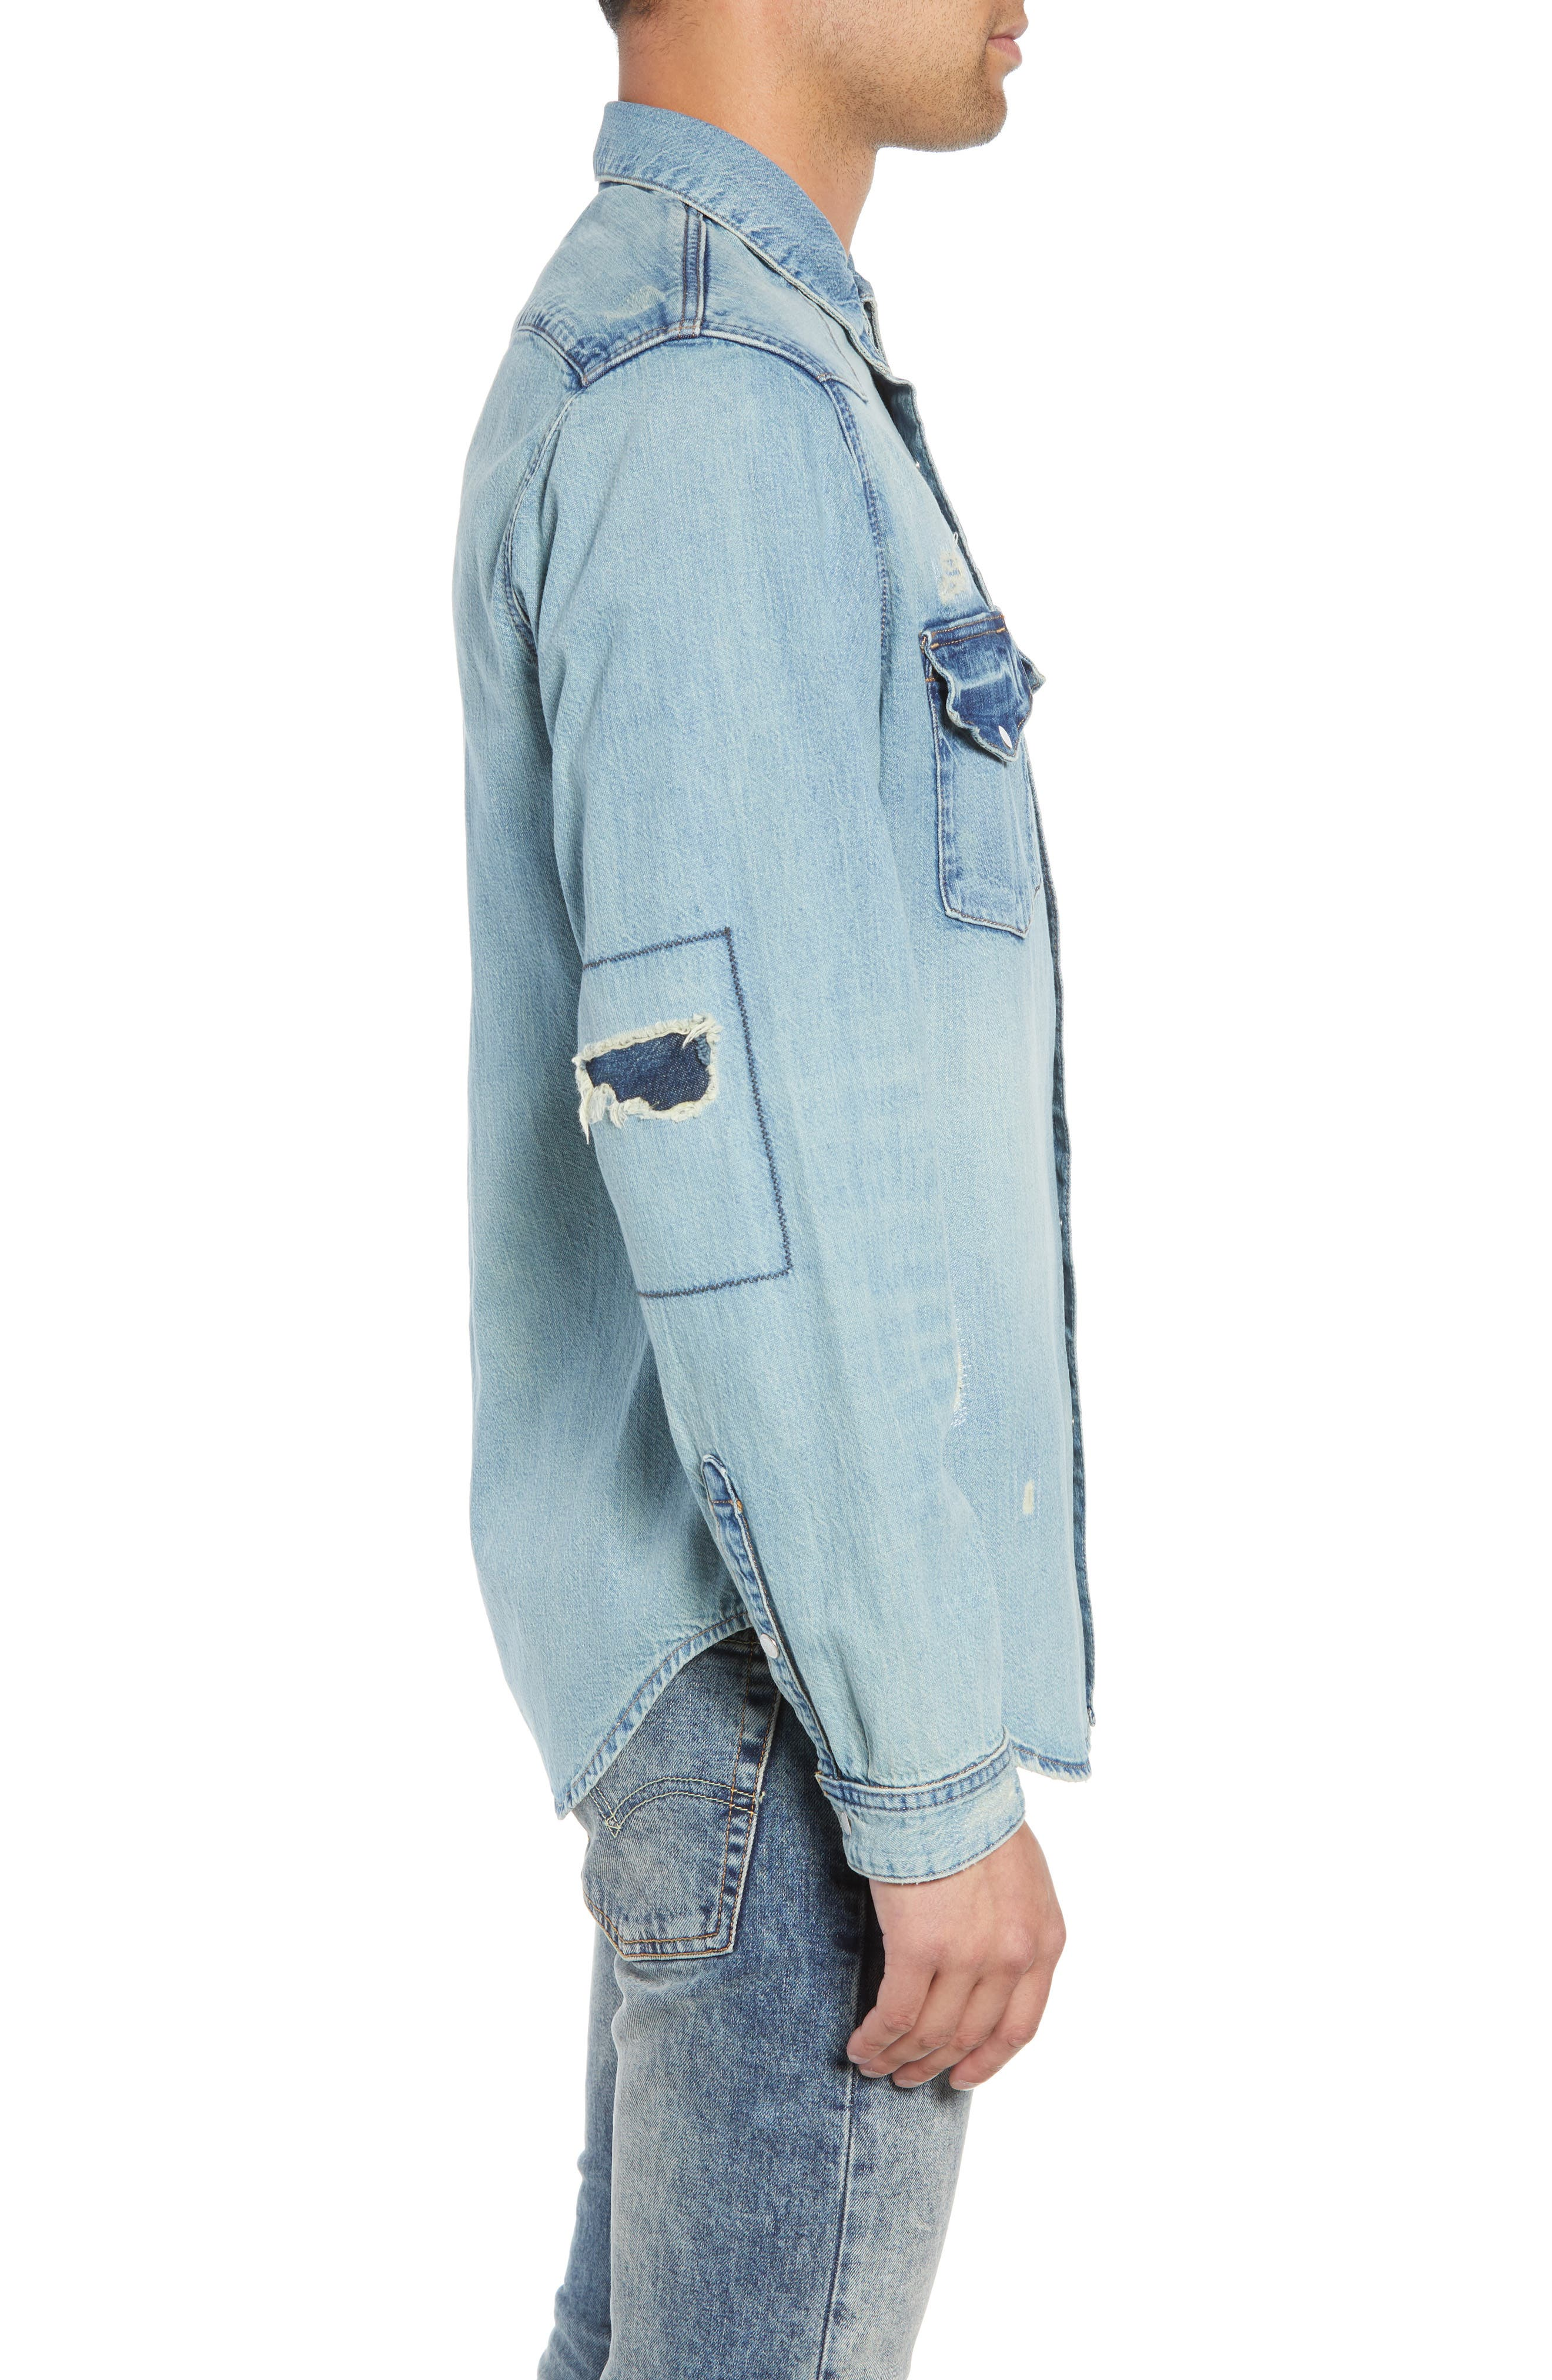 Western Denim Sport Shirt,                             Alternate thumbnail 4, color,                             450